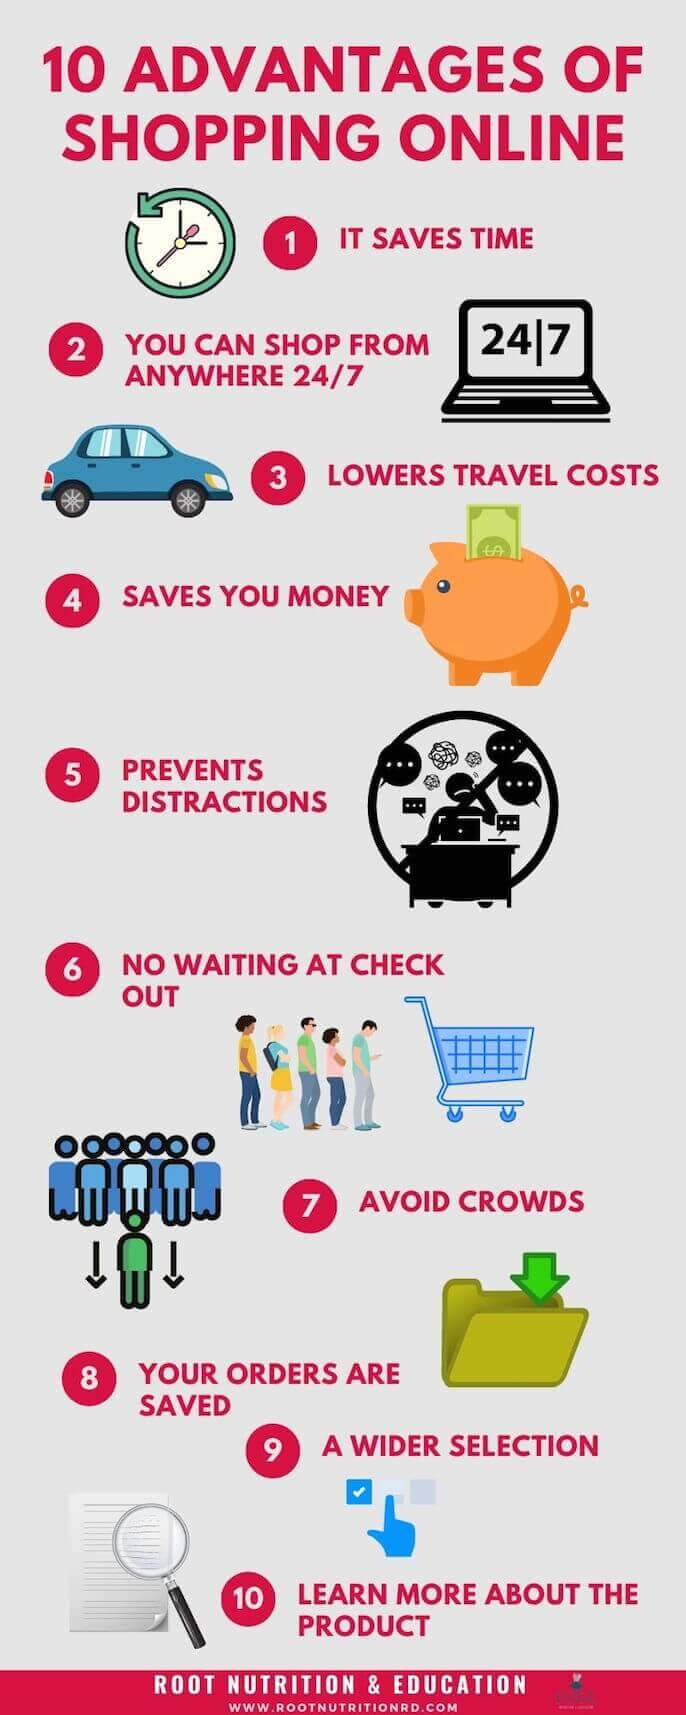 10 advantages of shopping online infographic | Root Nutrition & Education